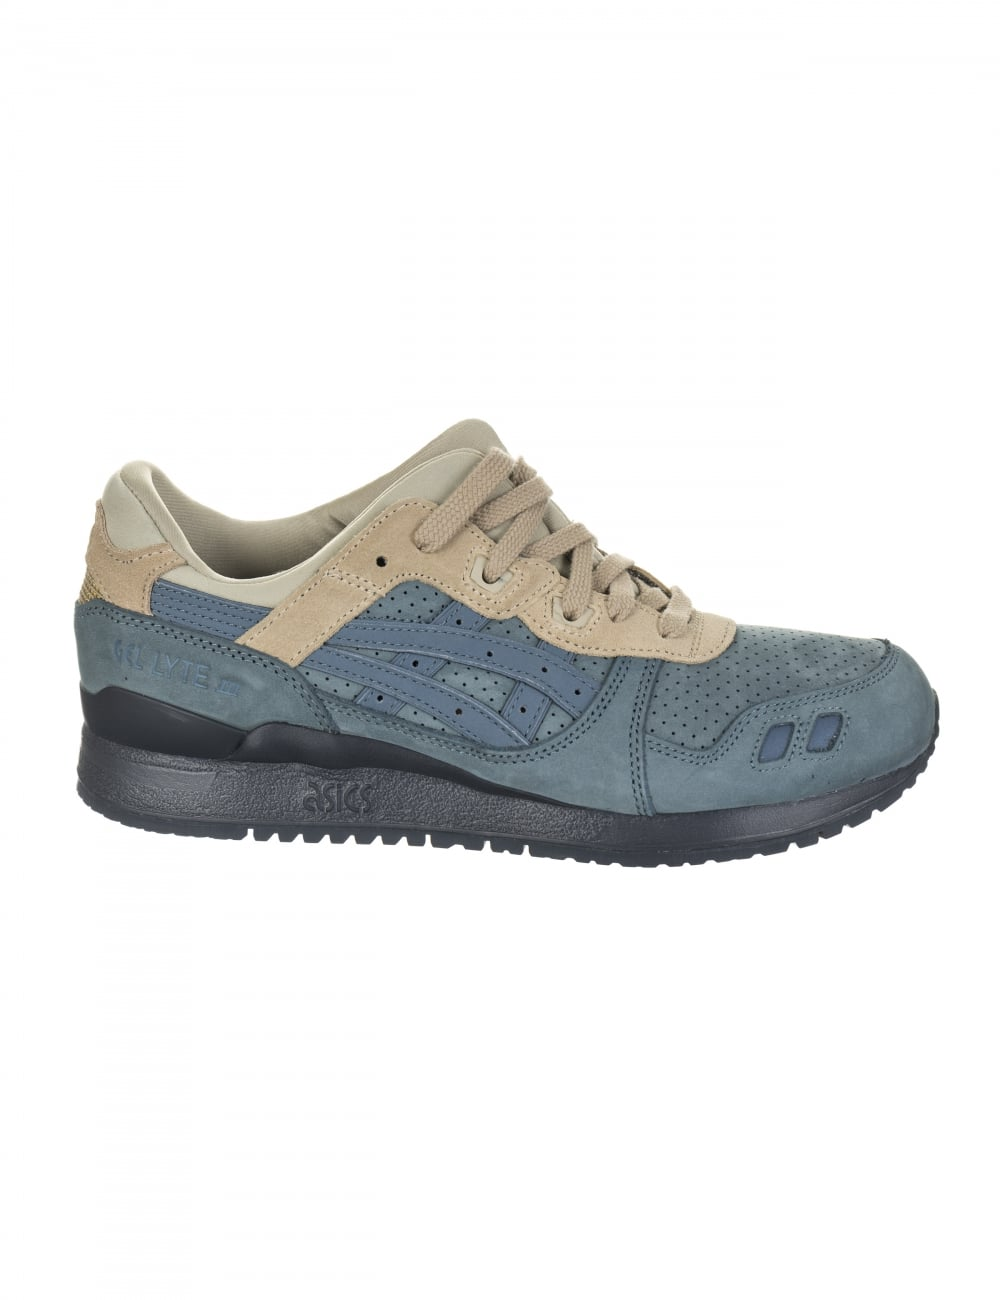 best website f86e4 bd0d4 Gel Lyte III Shoes - Blue Mirage/Blue Mirage (Moonwalker Pack)